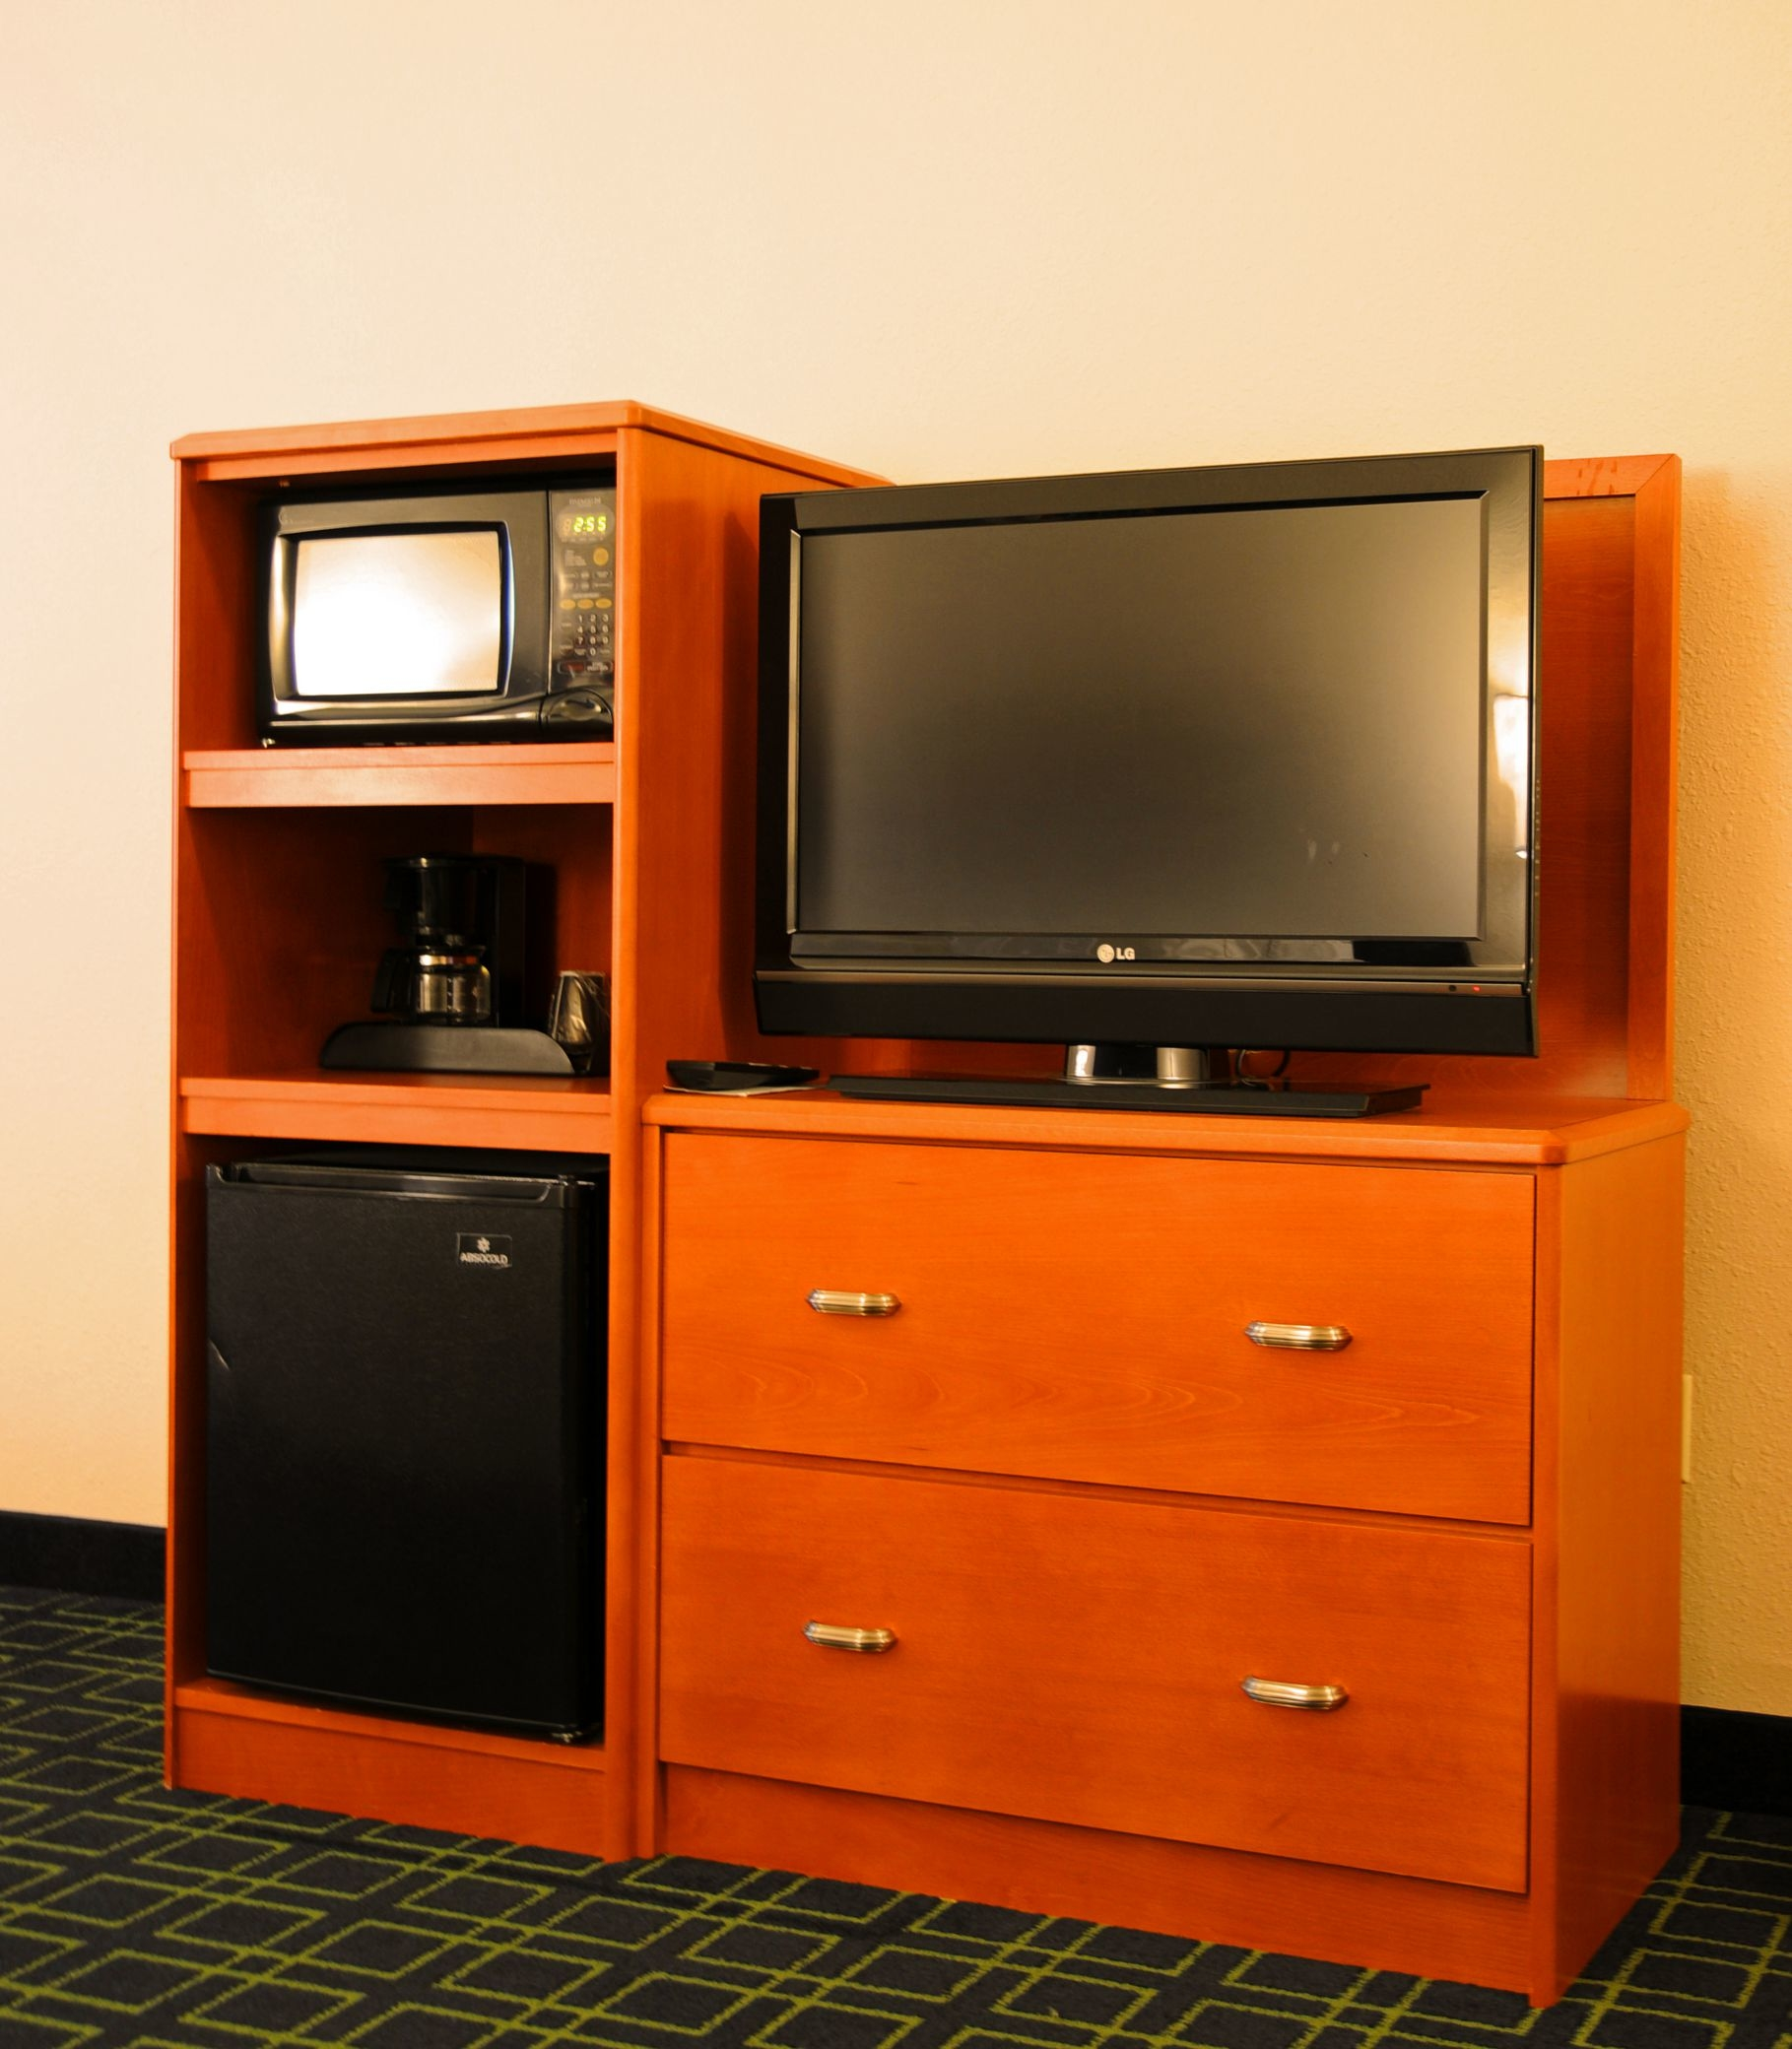 Fairfield Inn & Suites by Marriott Spearfish image 0